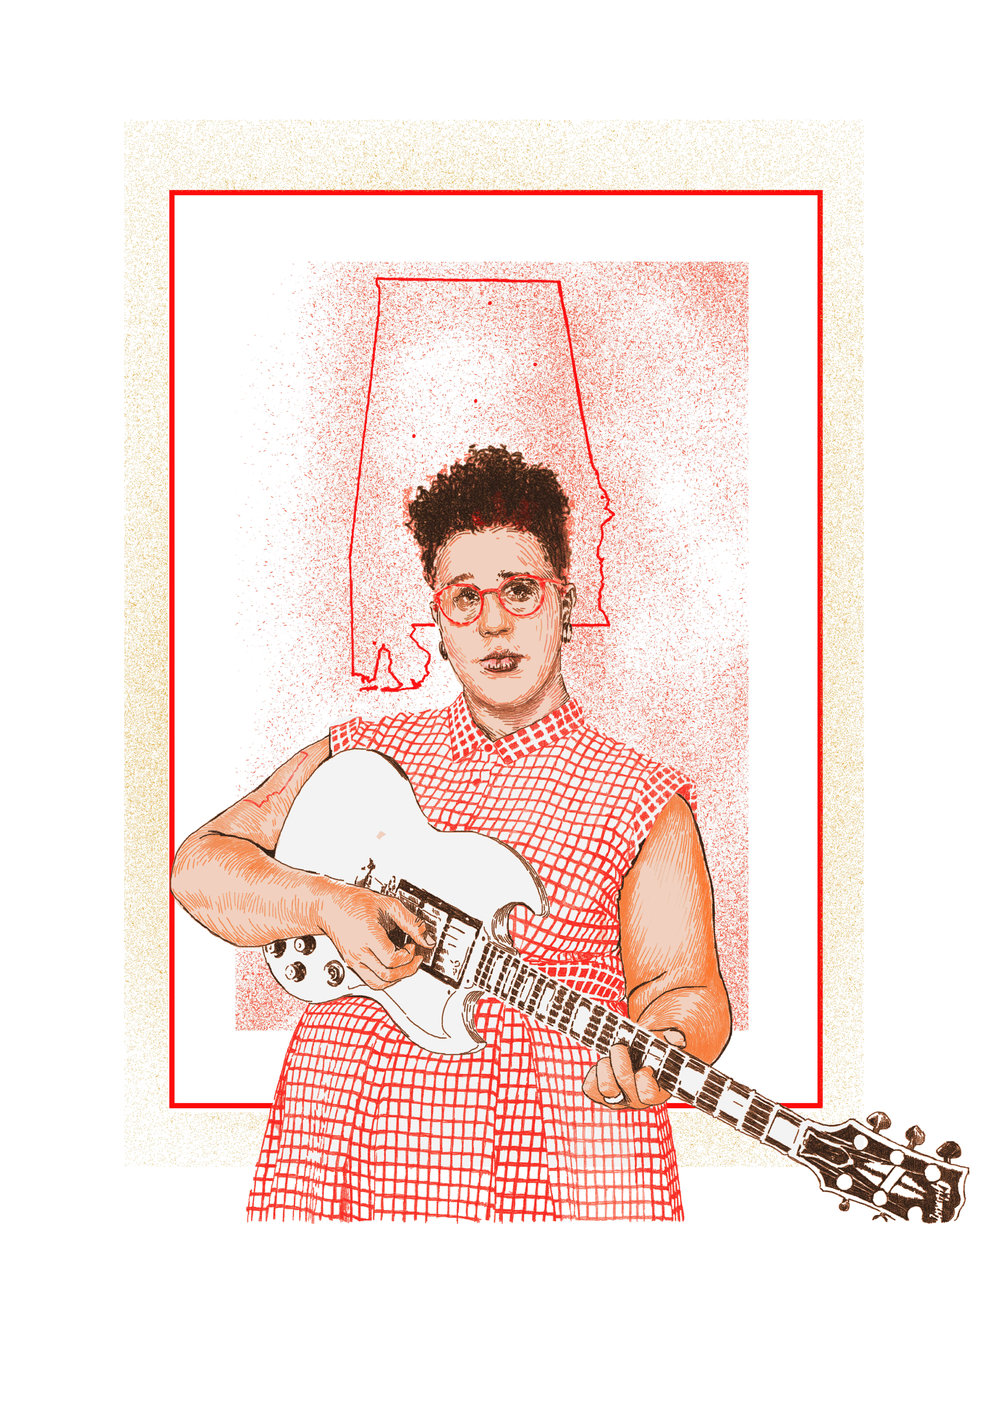 brittany howard  for ' WOMEN WHO ROCK  Bessie to Beyonce. Girl Groups to Riot Grrrl.' Edited by Evelyn McDonnell